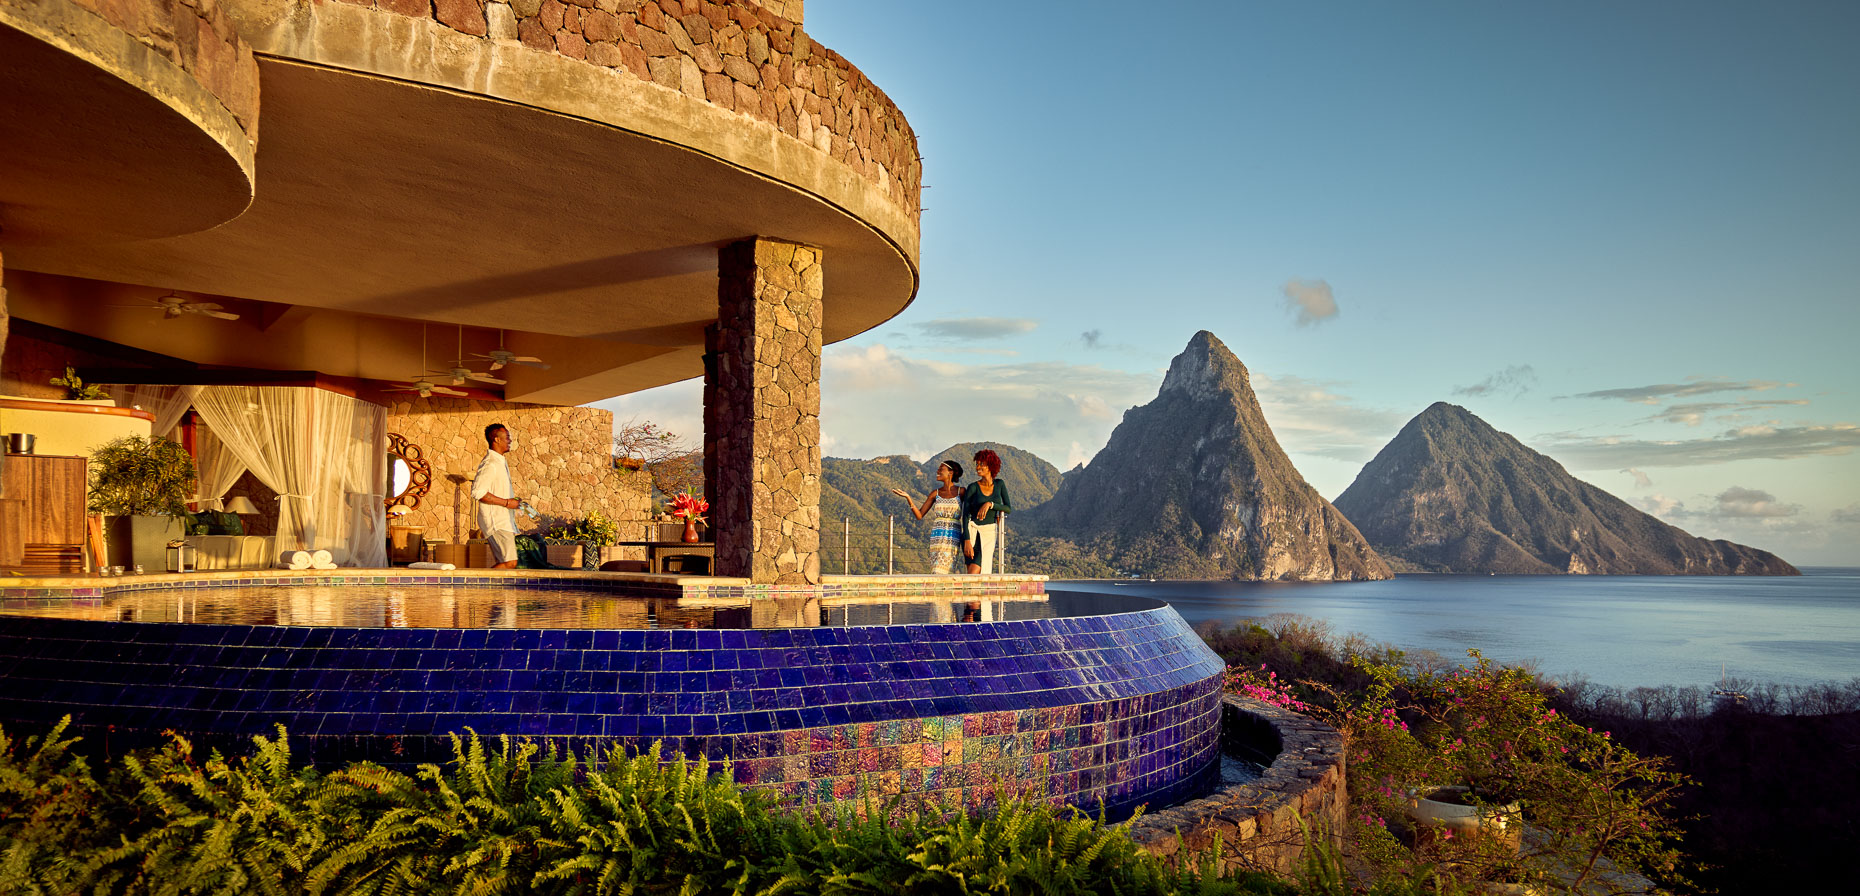 Kevin Steele - Relaxing at sunset at beautiful Jade Mountain Resort